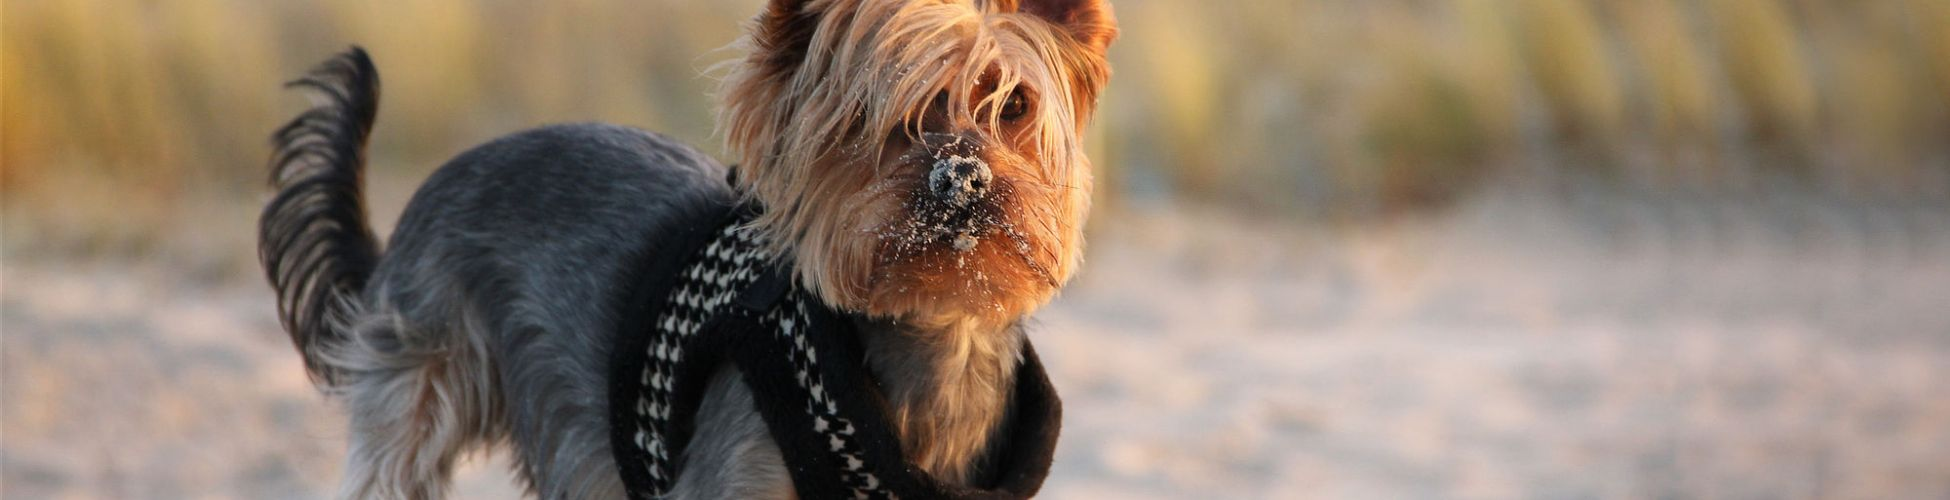 Yorkshire-Terrier am Strand